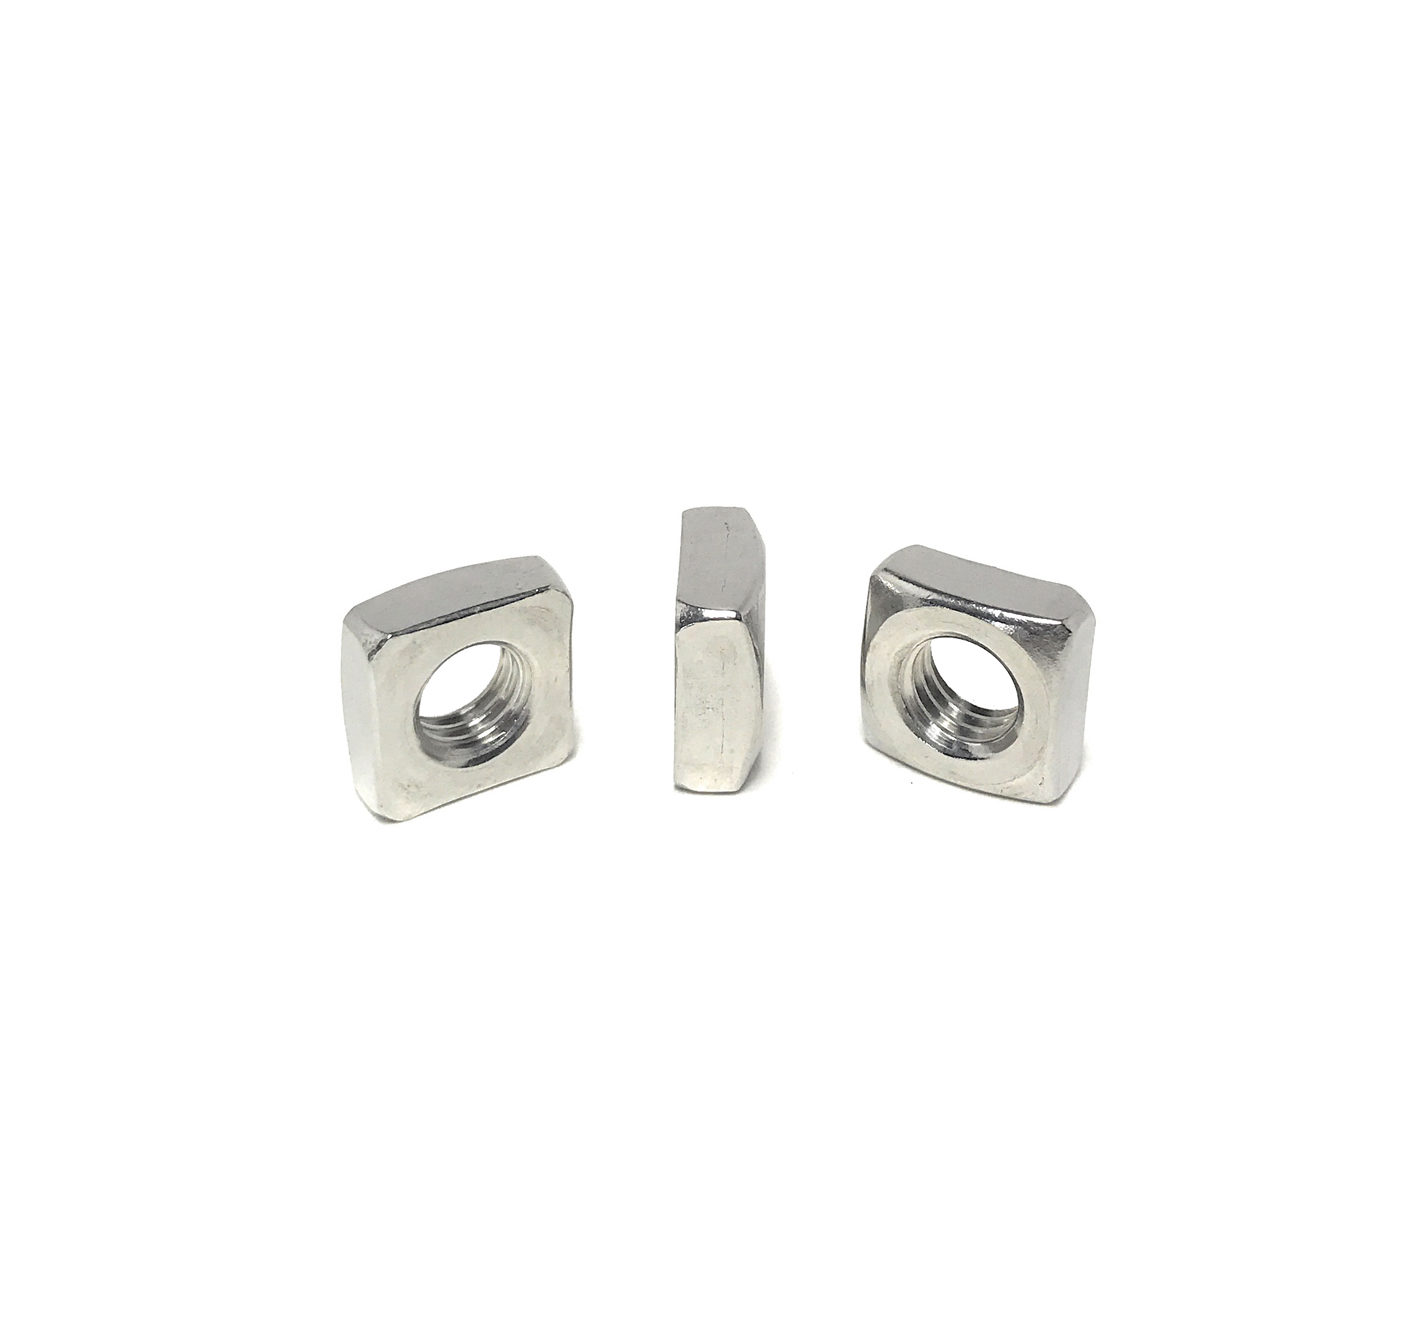 5//8-11 Qty-250 Square Nut 18-8 Stainless Steel